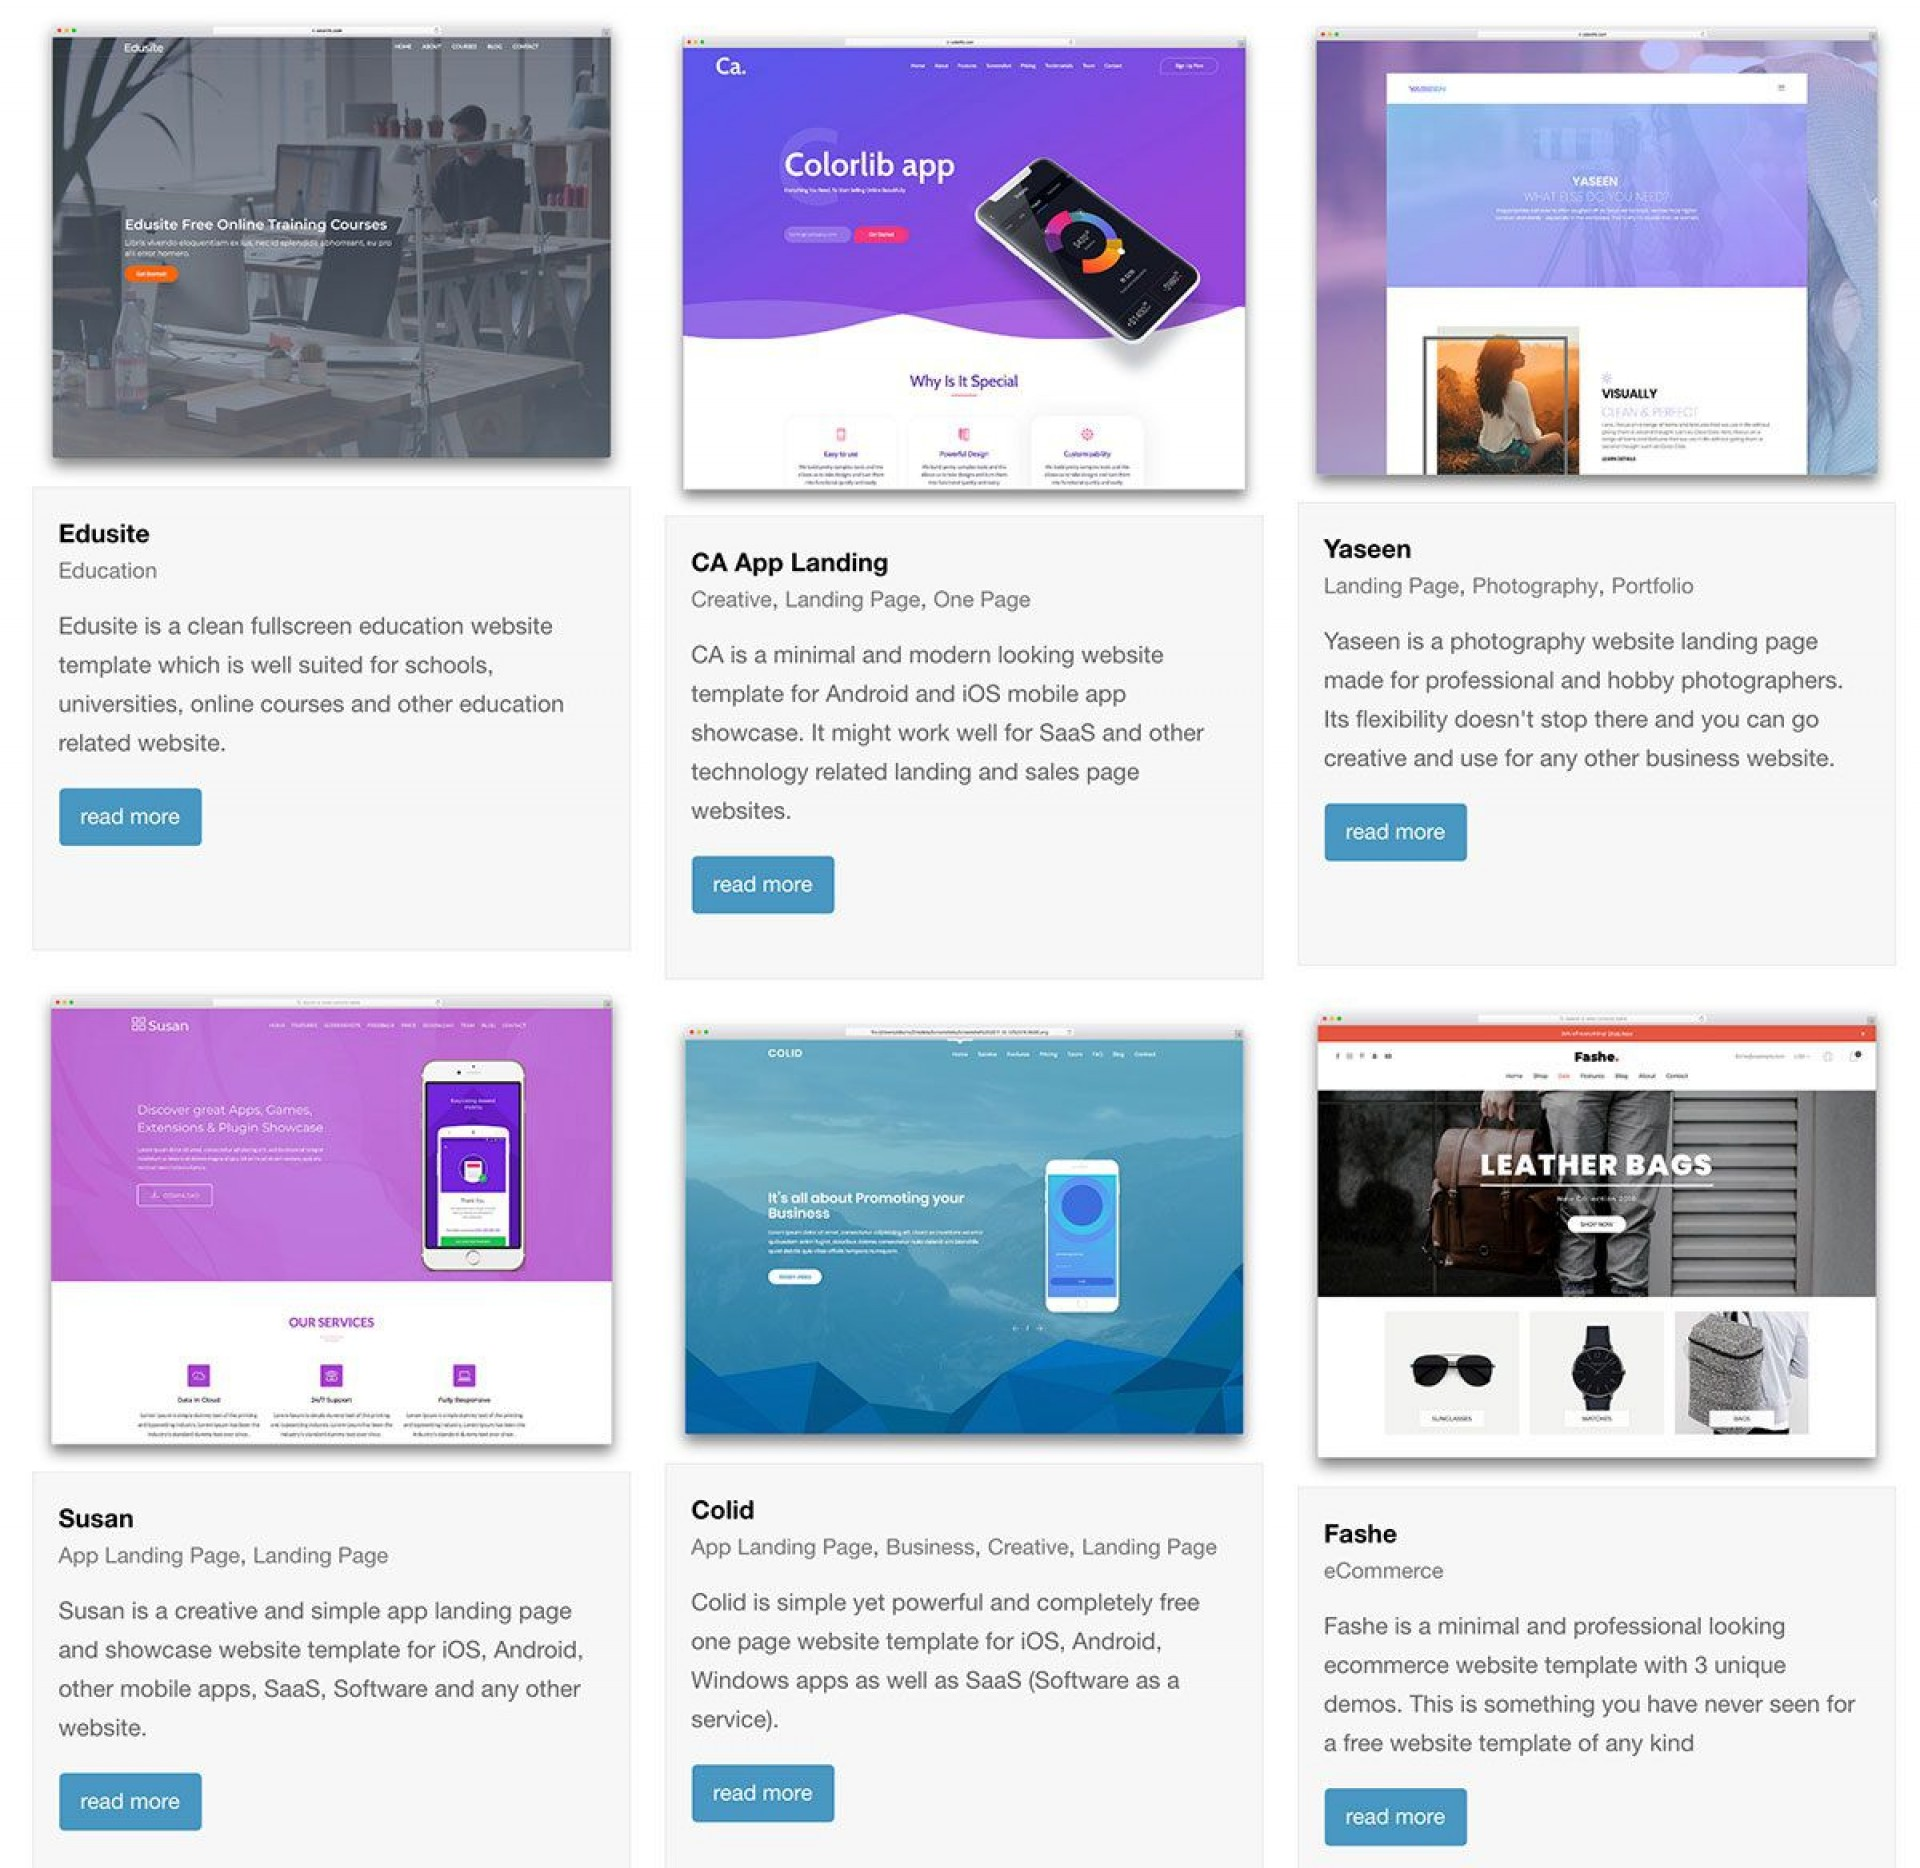 005 Top Single Page Web Template Example  Templates One Website Free Download Html5 Bootstrap1920